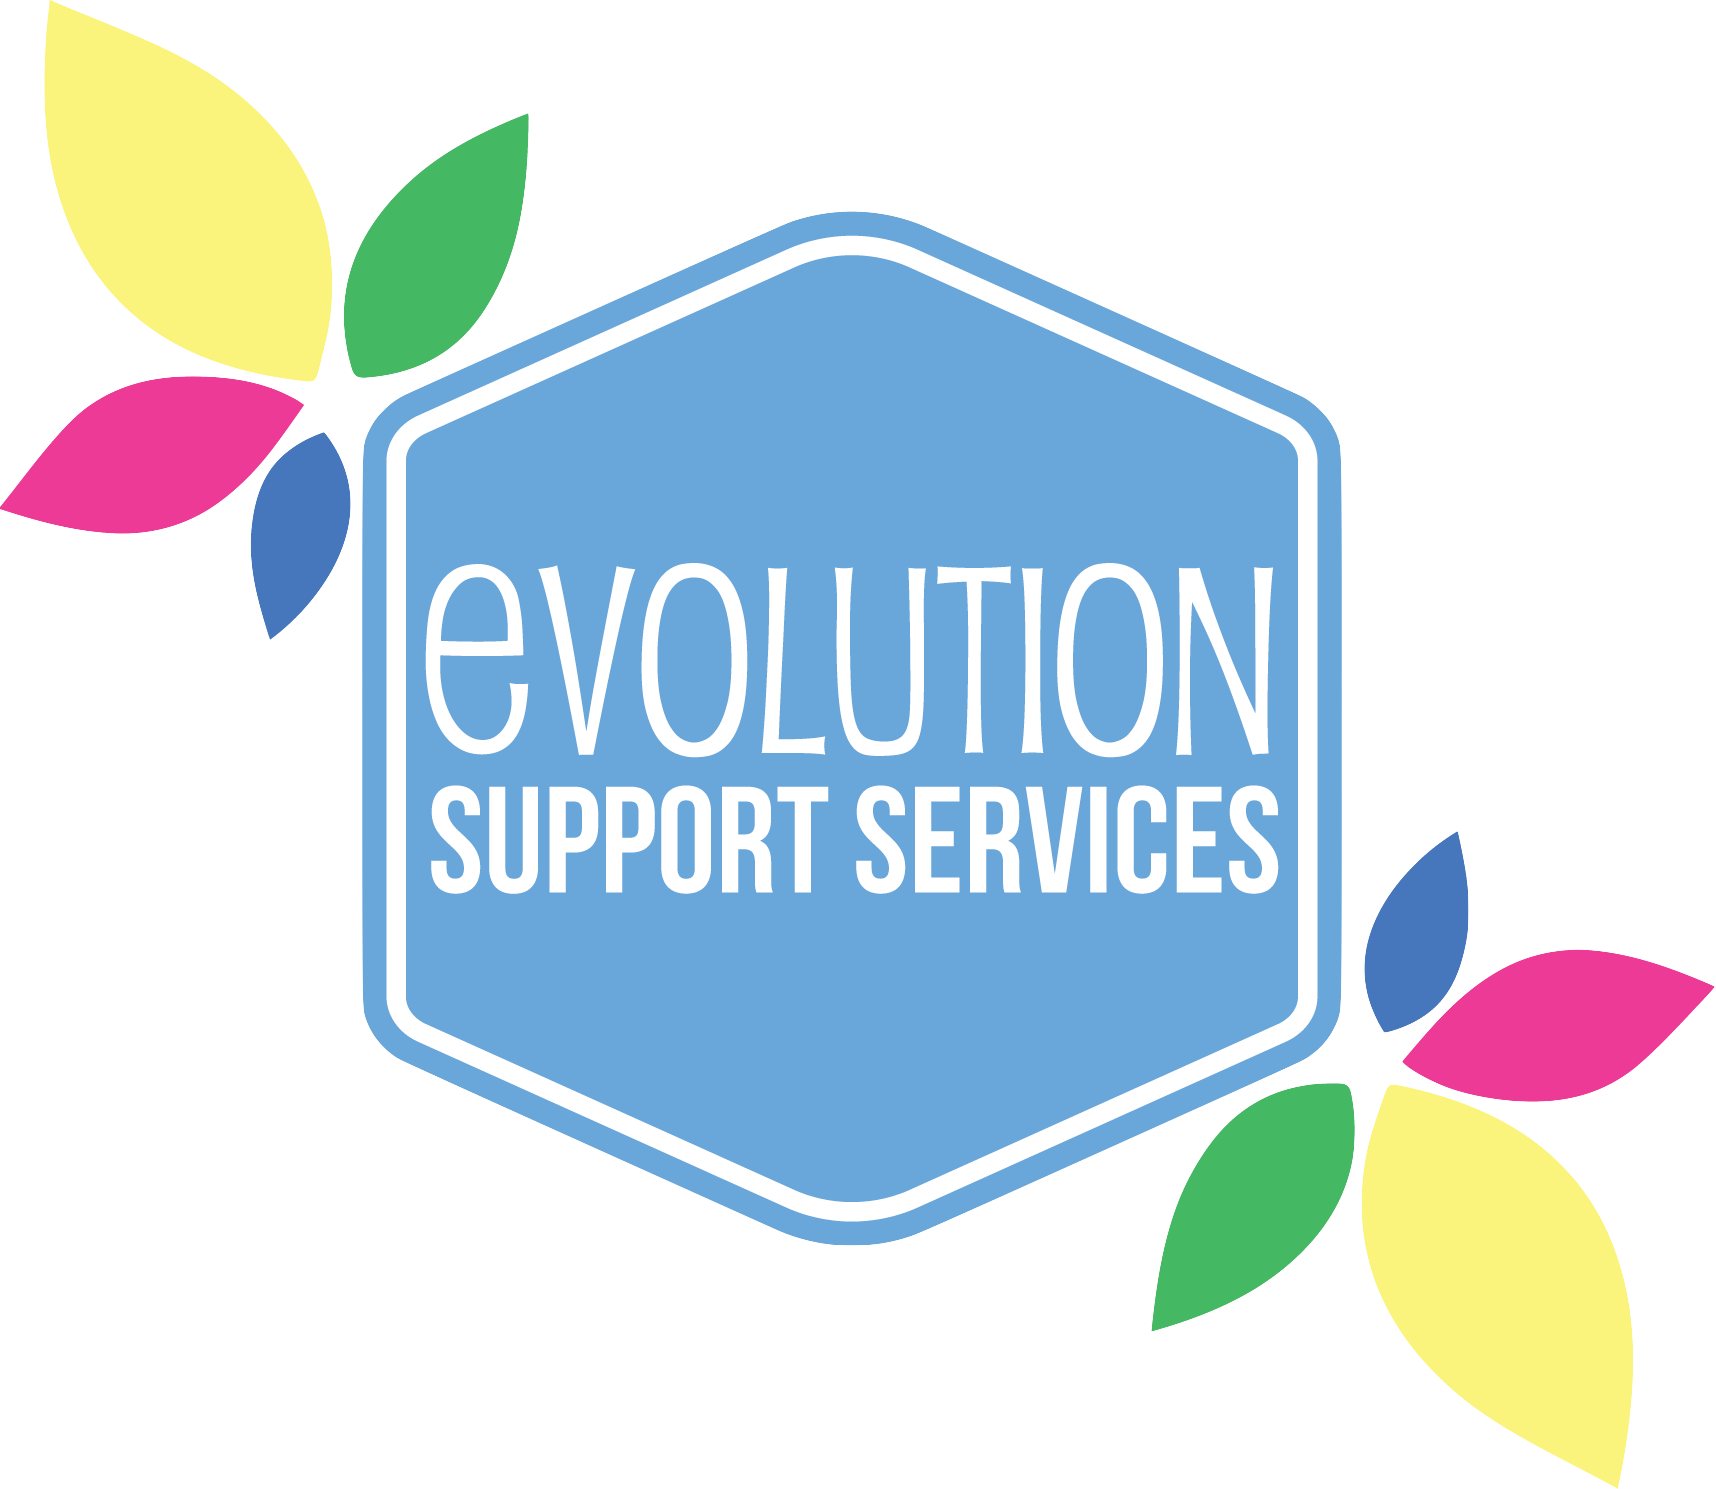 Evolution Support Services